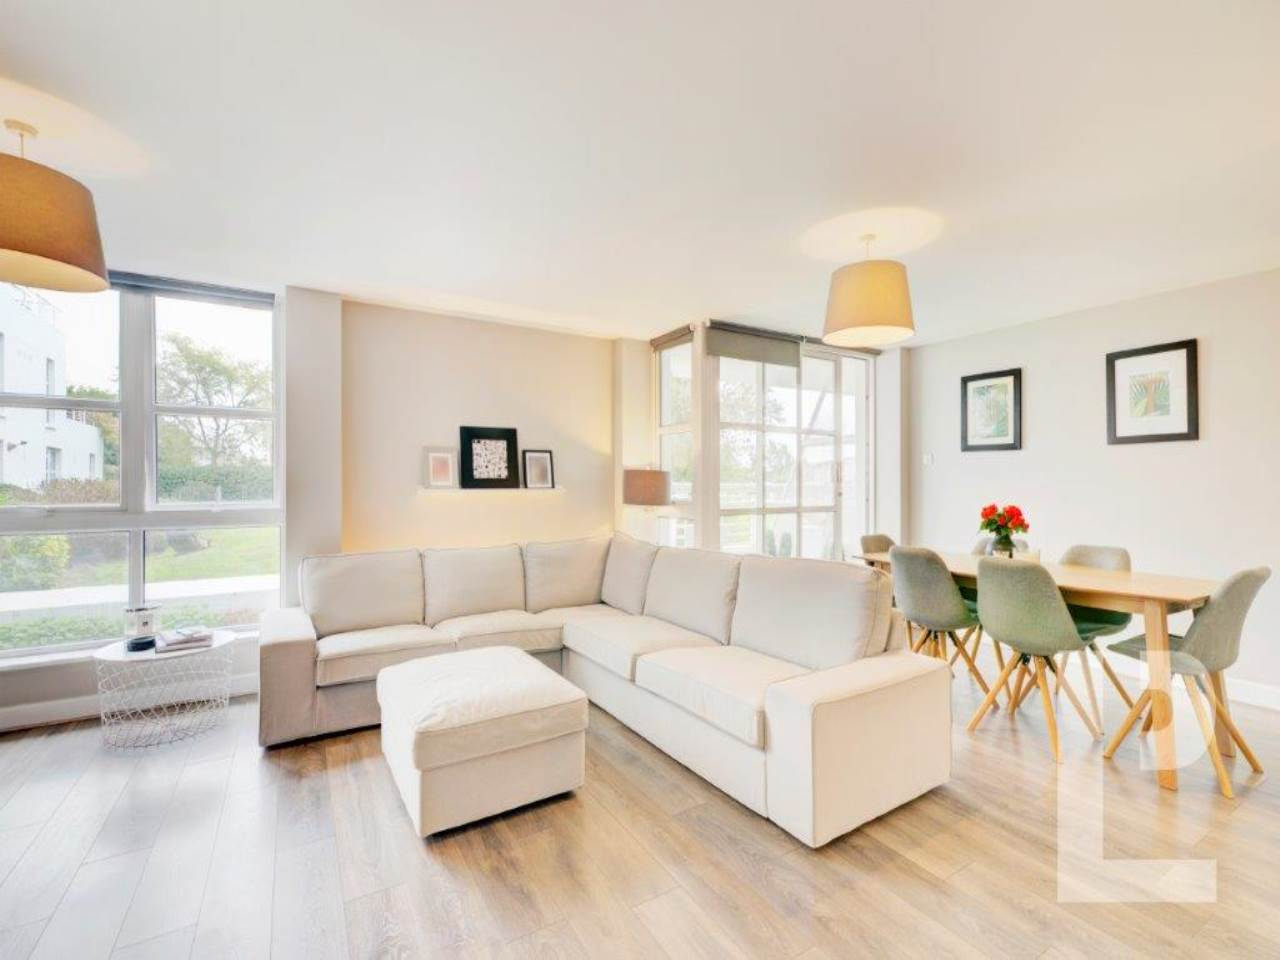 2 bed flat for sale in Barrier Point Road, Royal Docks  - Property Image 1